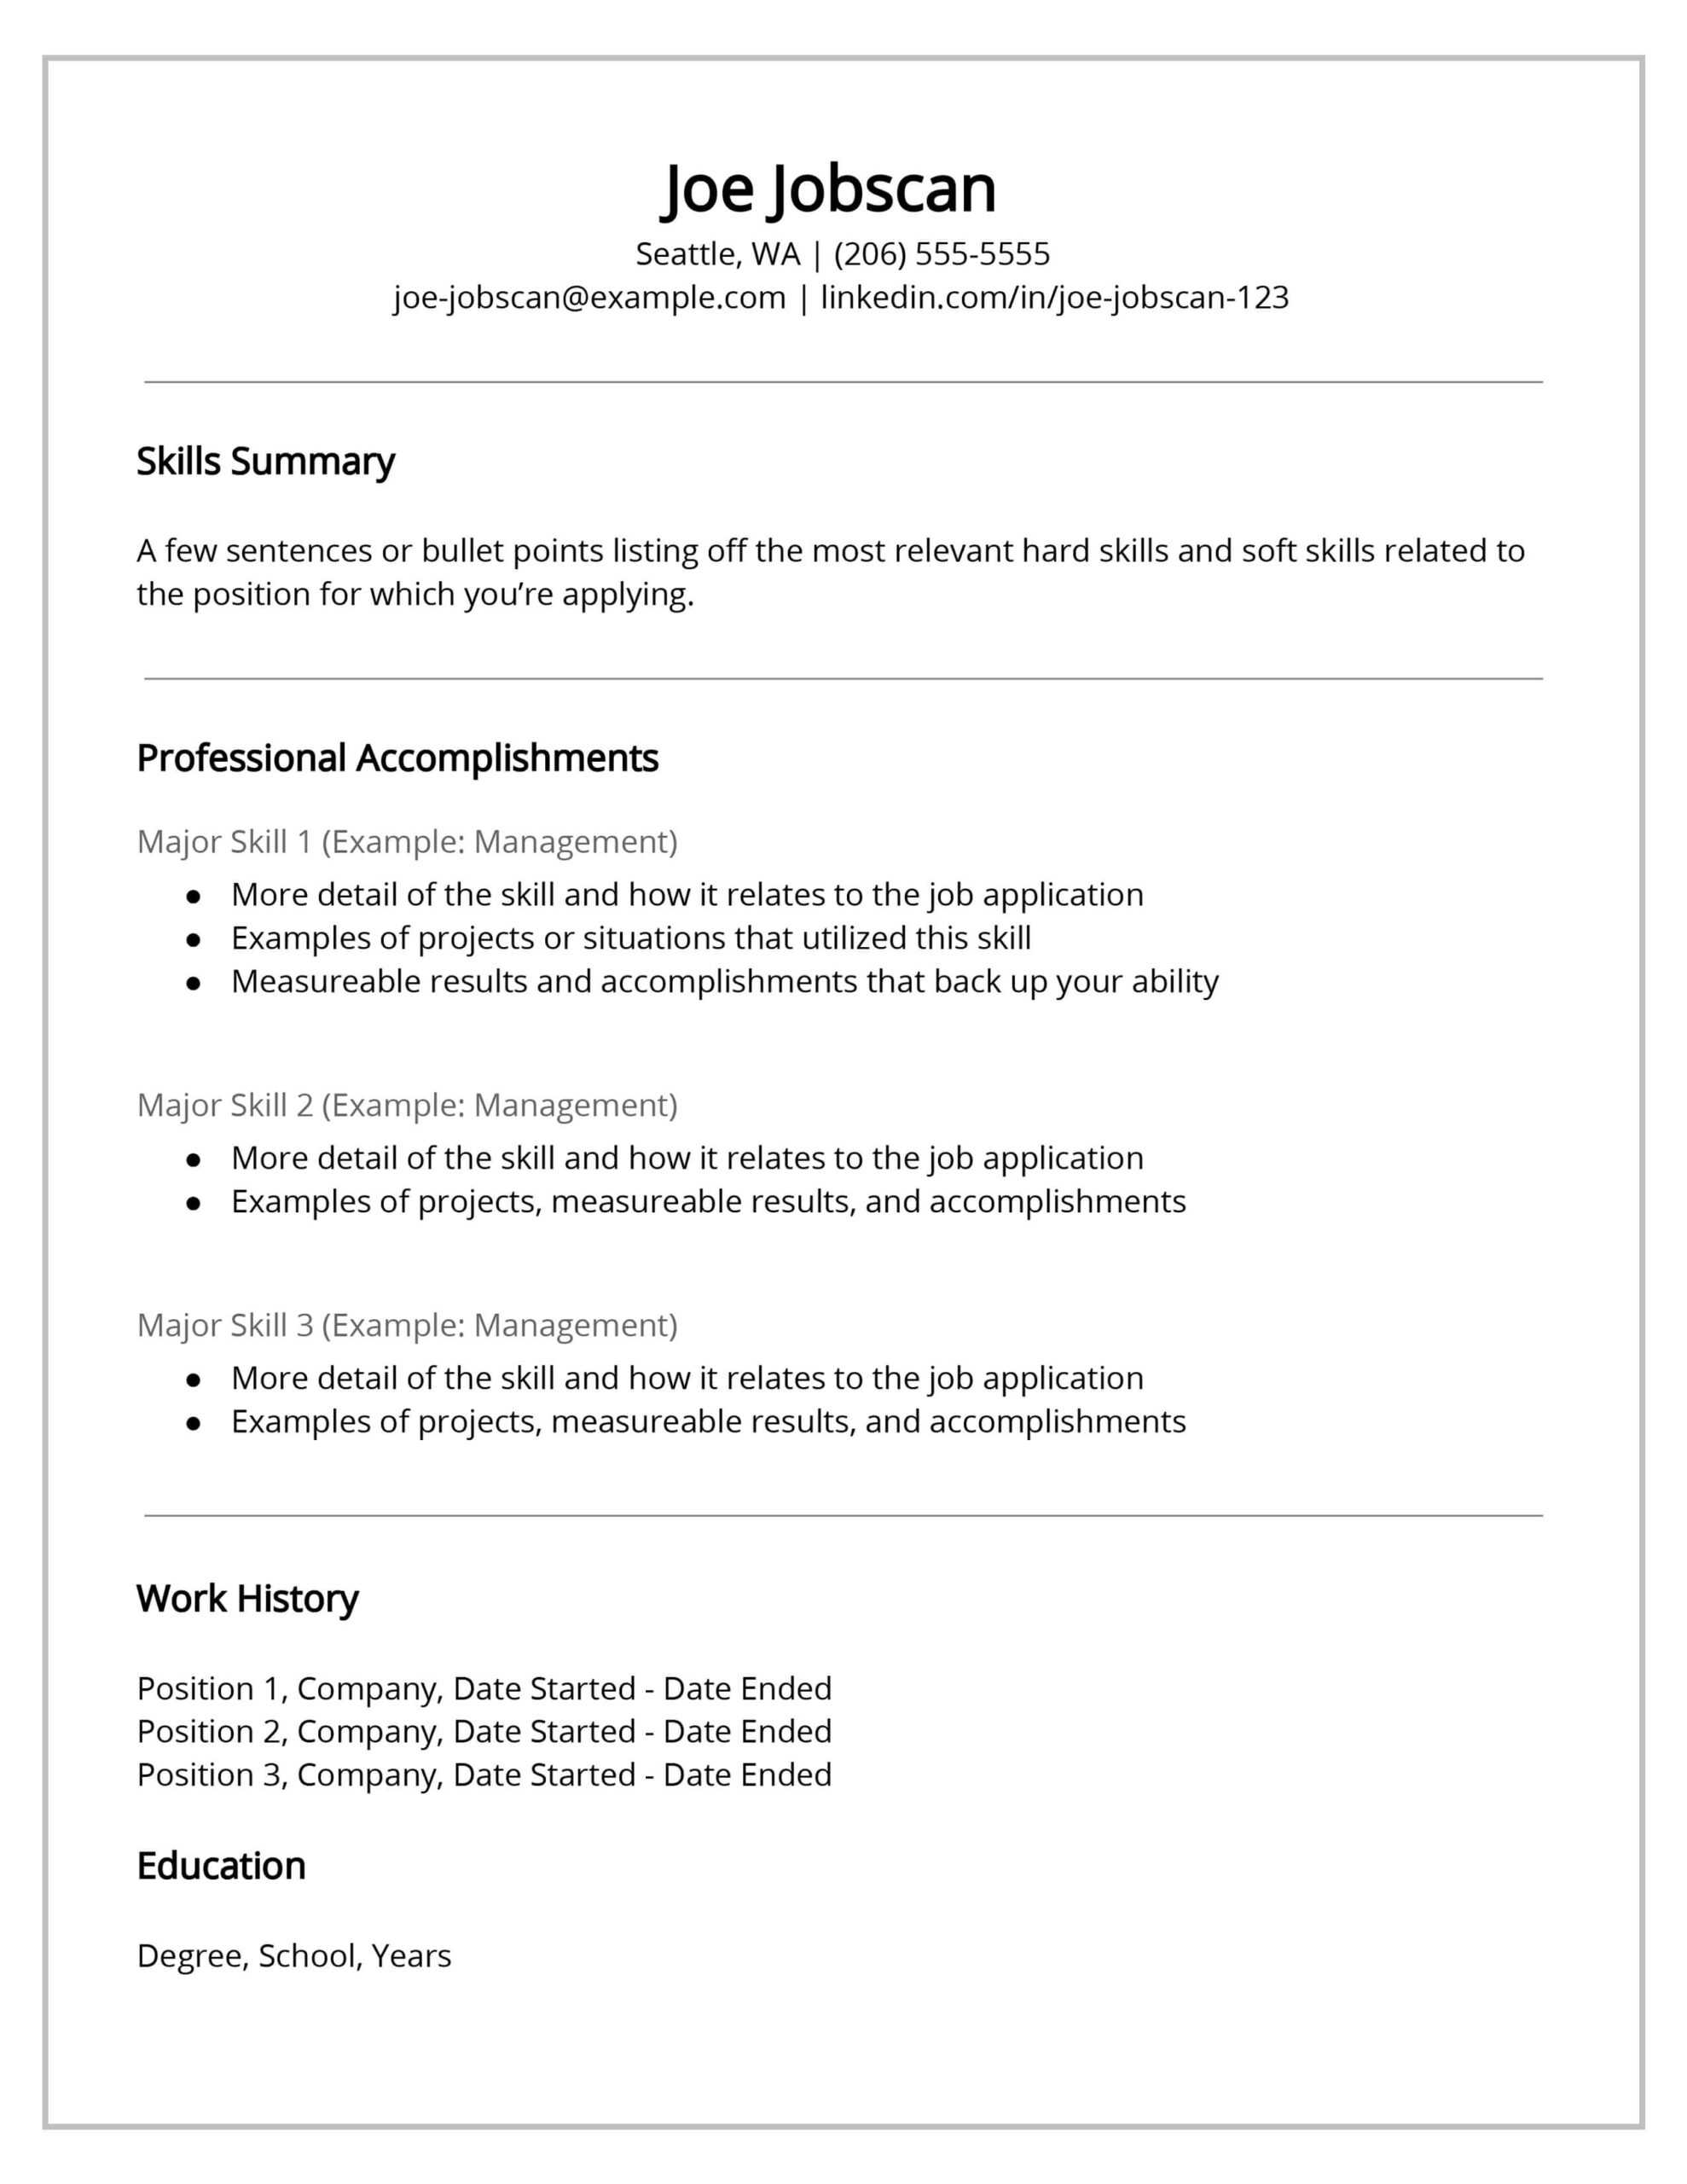 recruiters hate the functional resume format here skill set template job writing examples Resume Skill Set Resume Format